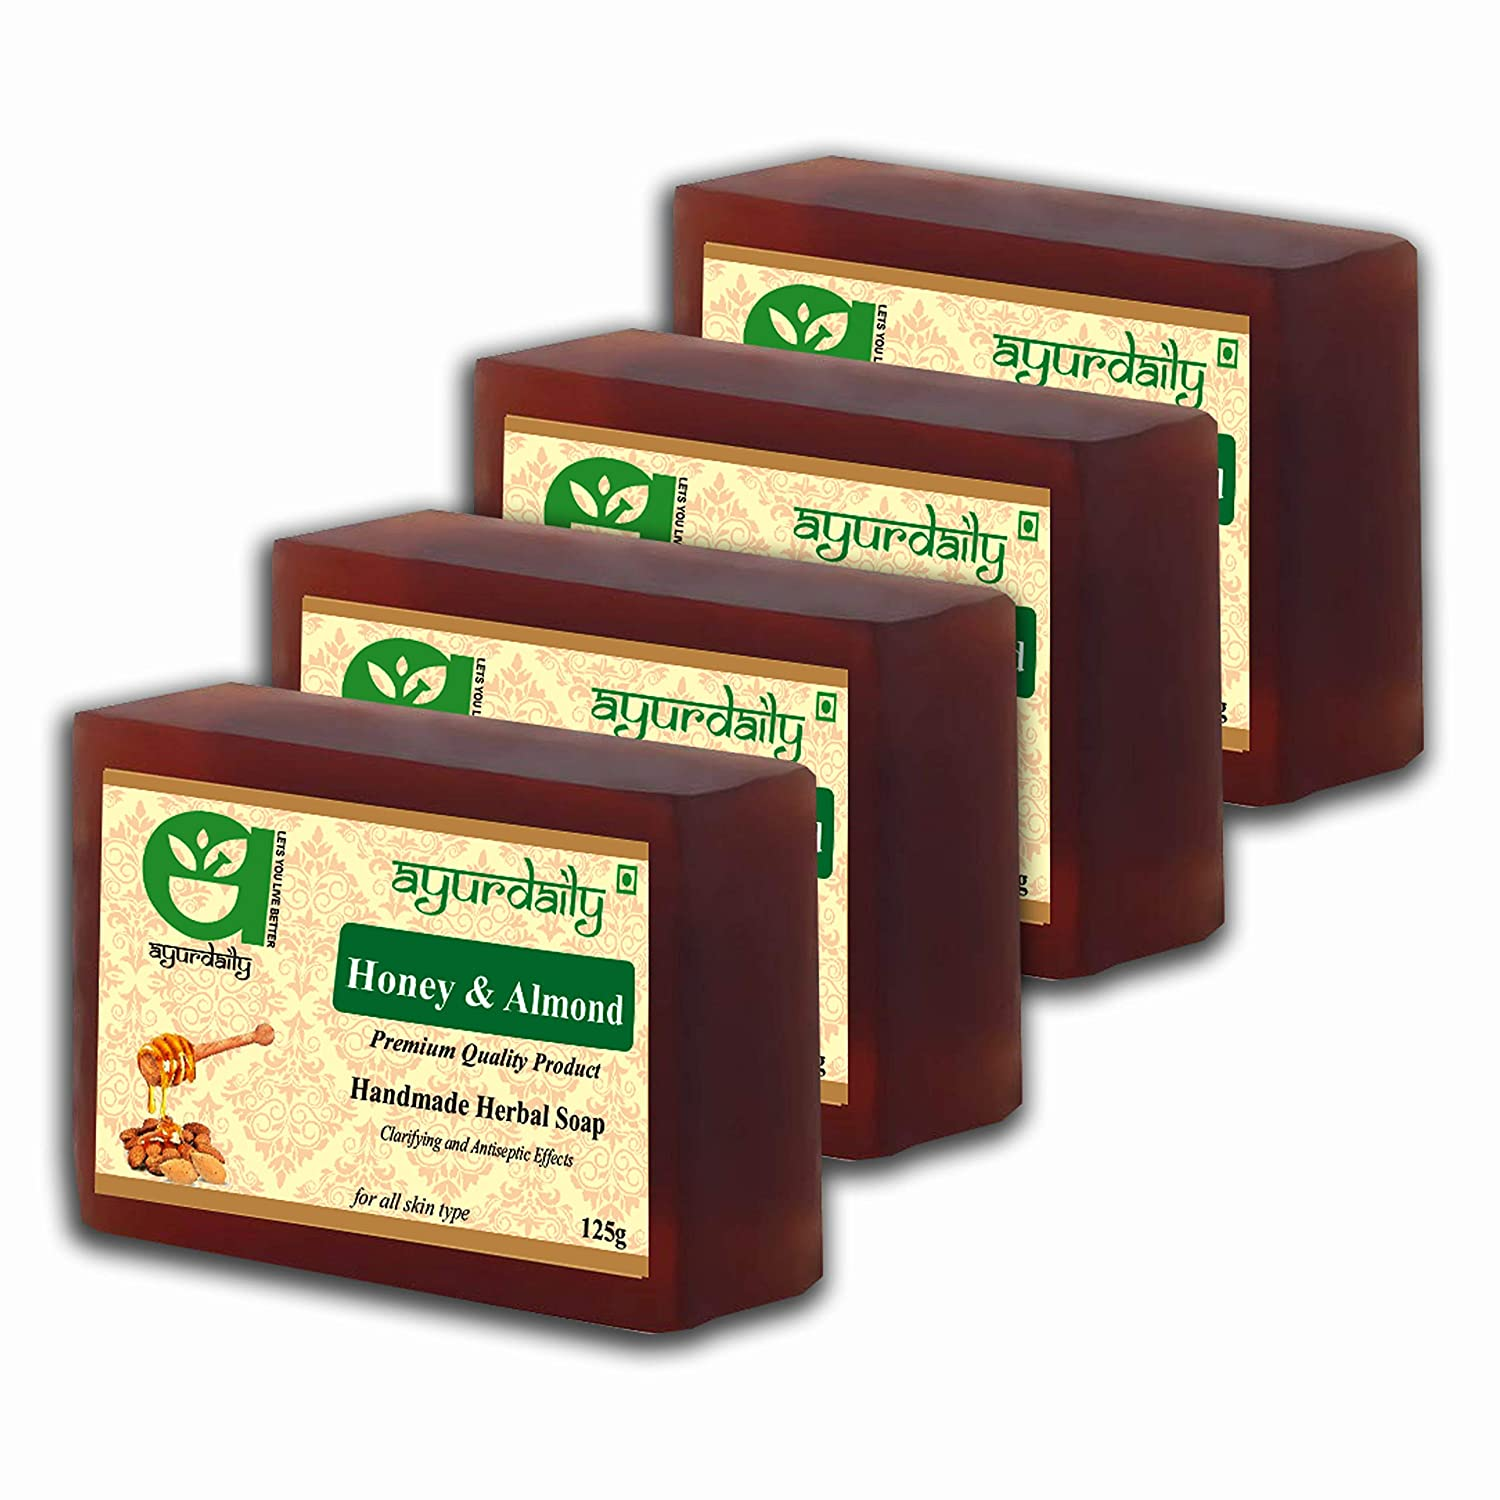 Ayurdaily Herbal Honey & Almond Soap 500g (Pack of 4)